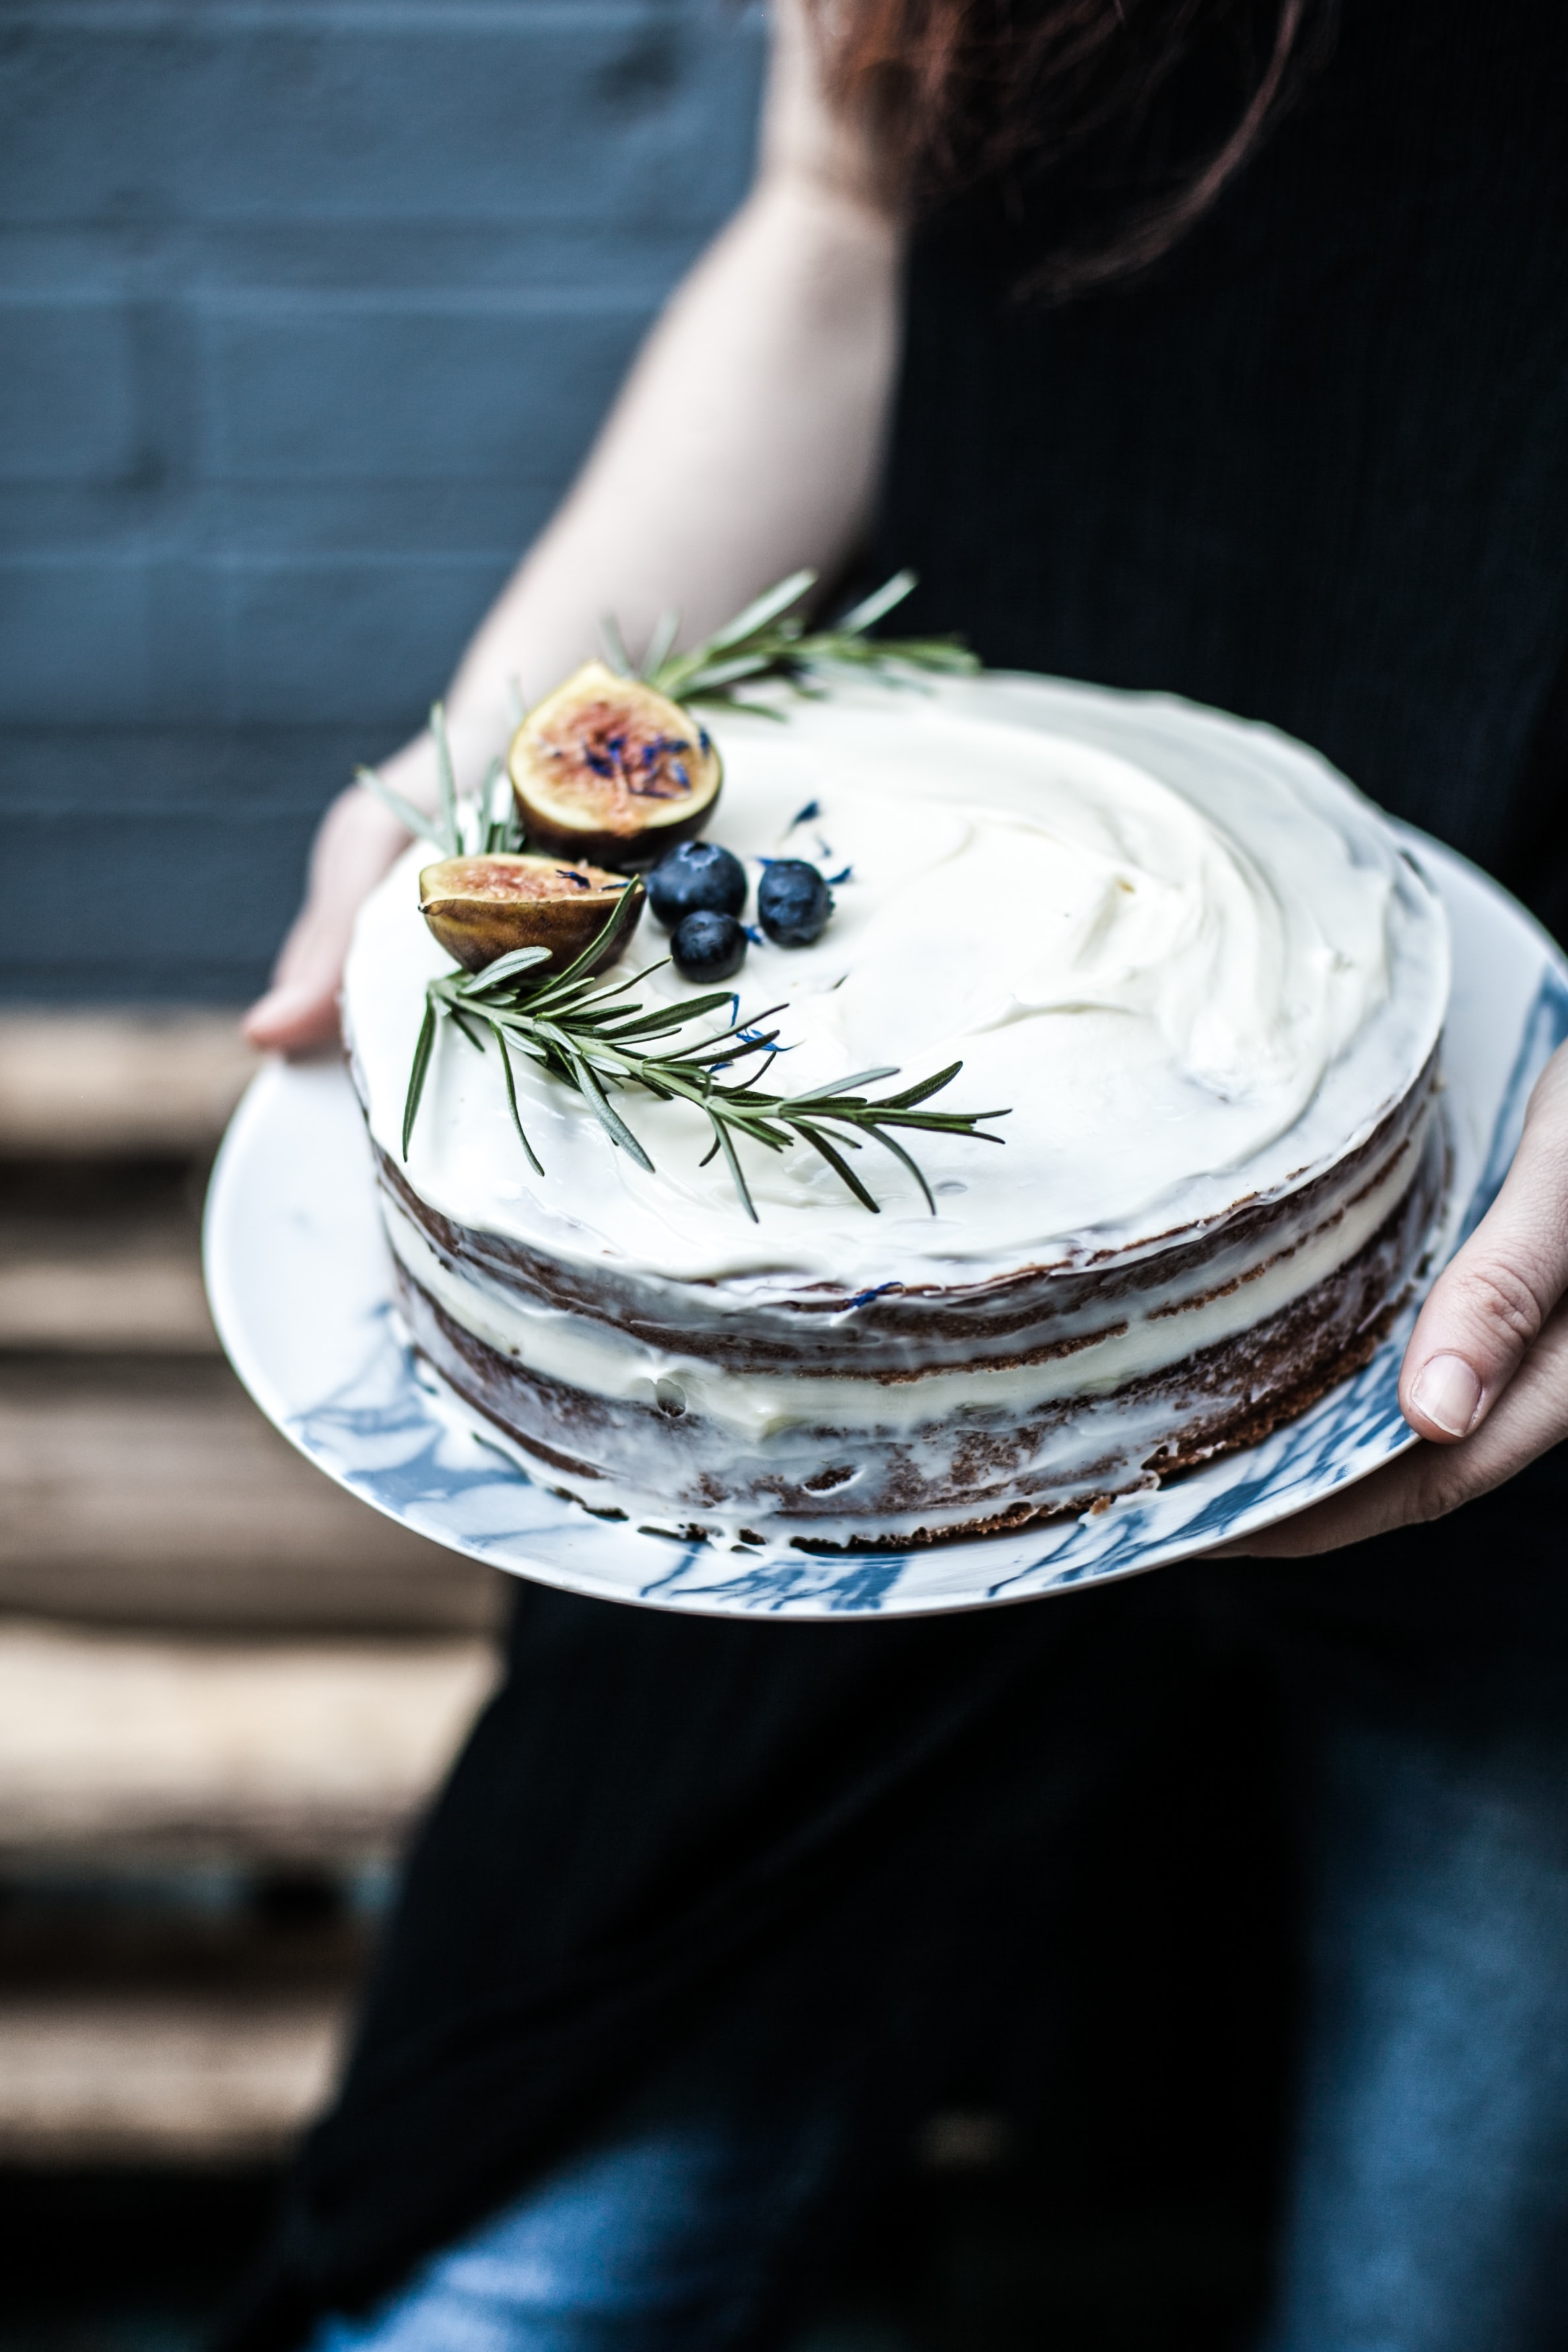 person holding round white icing-covered cake with blue berry on top